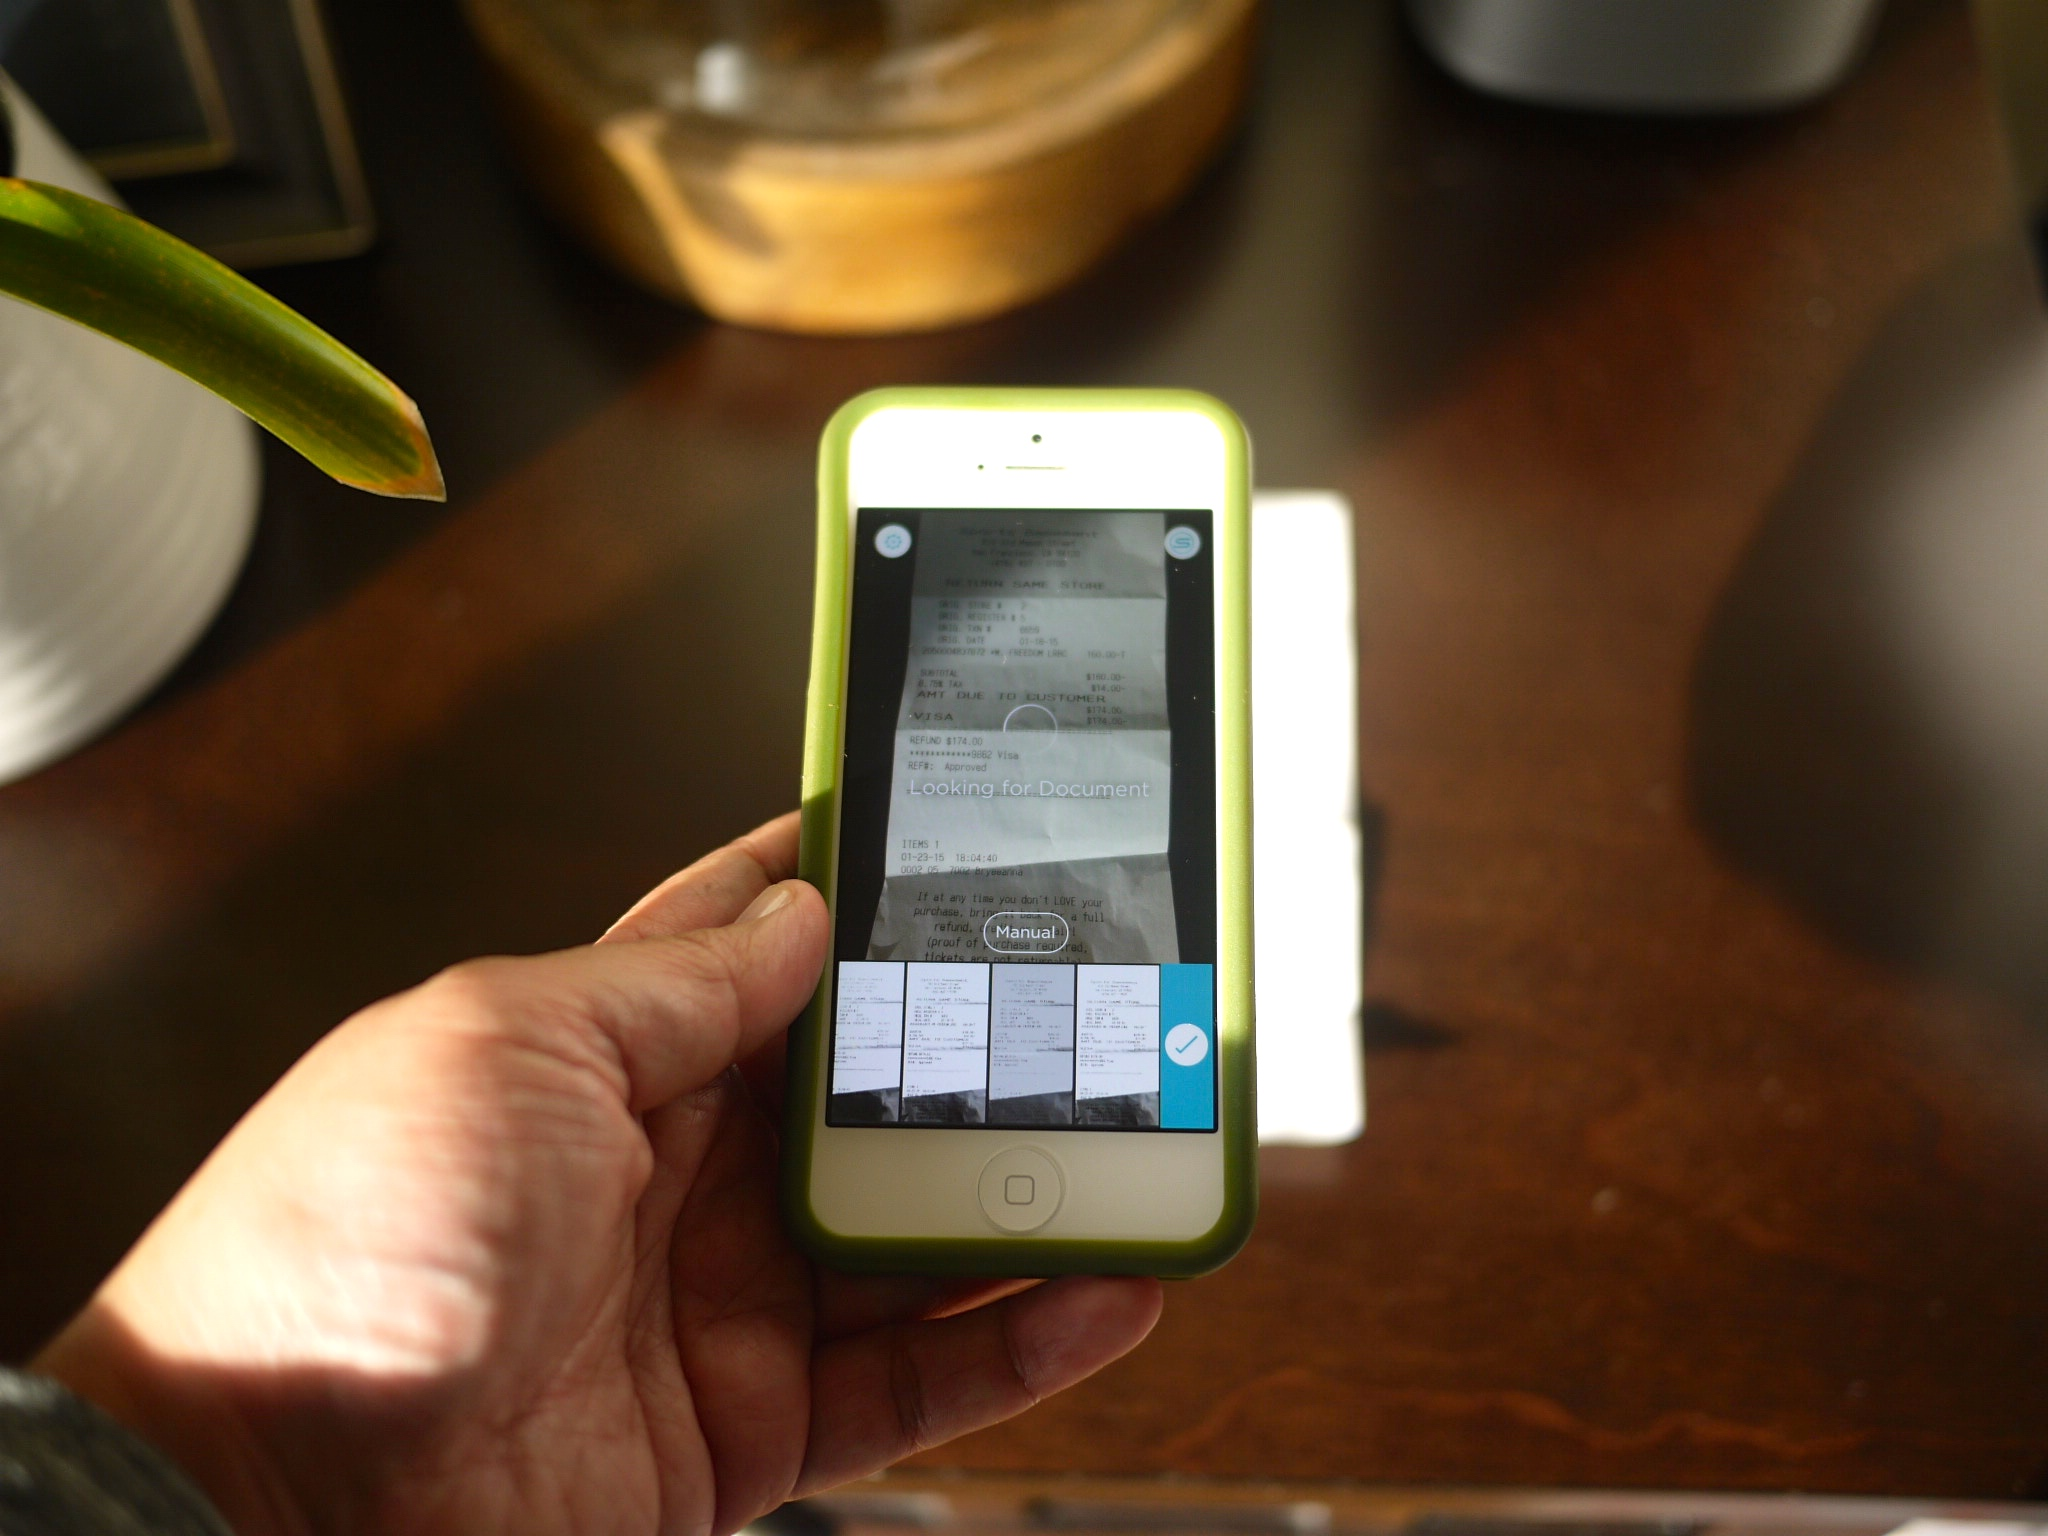 evernote s new free app takes the ugh out of scanning recode